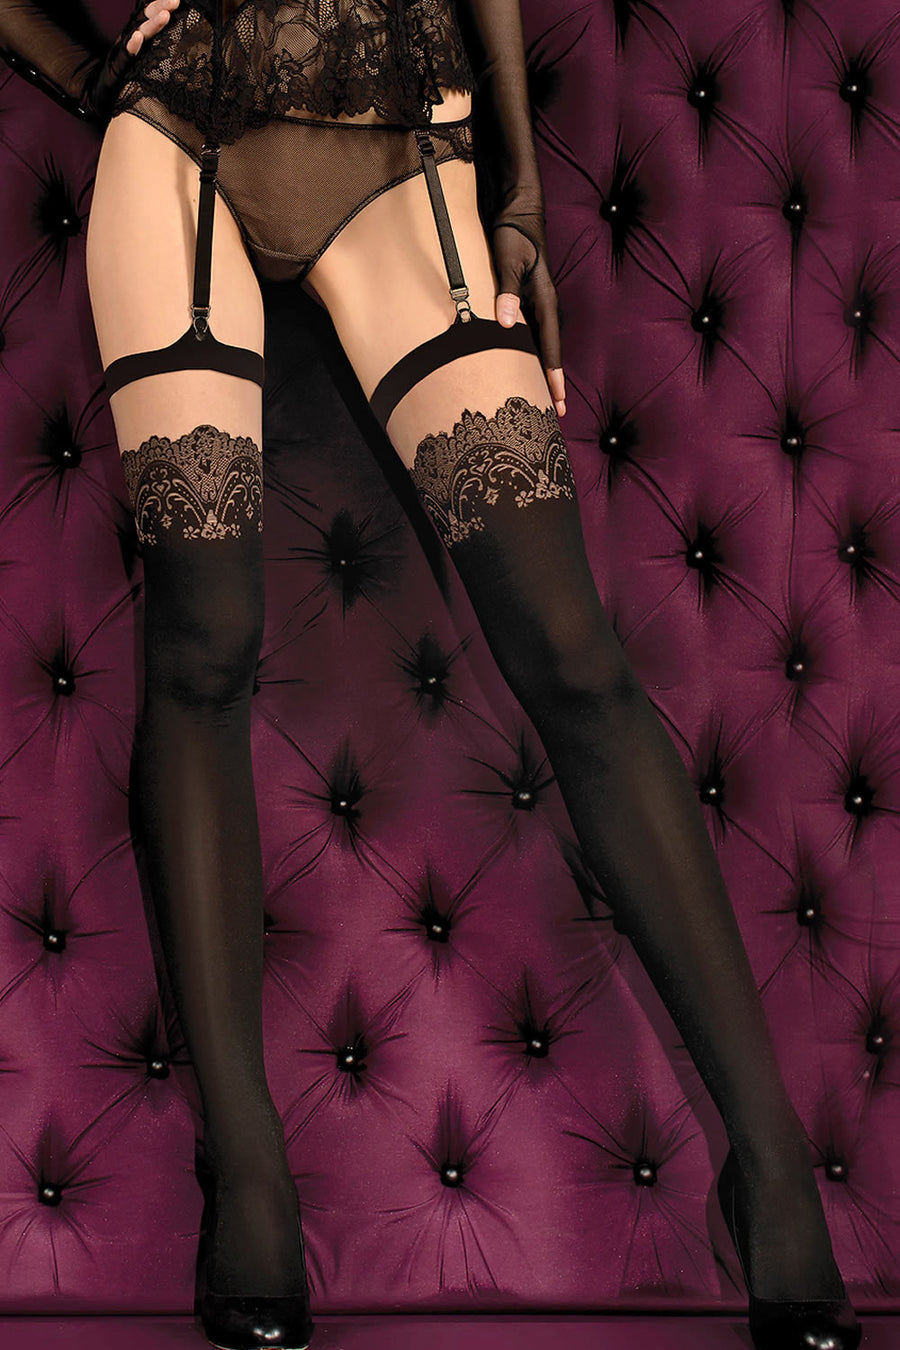 Ballerina Smeraldo Opaque Stockings - Mayfair Stockings